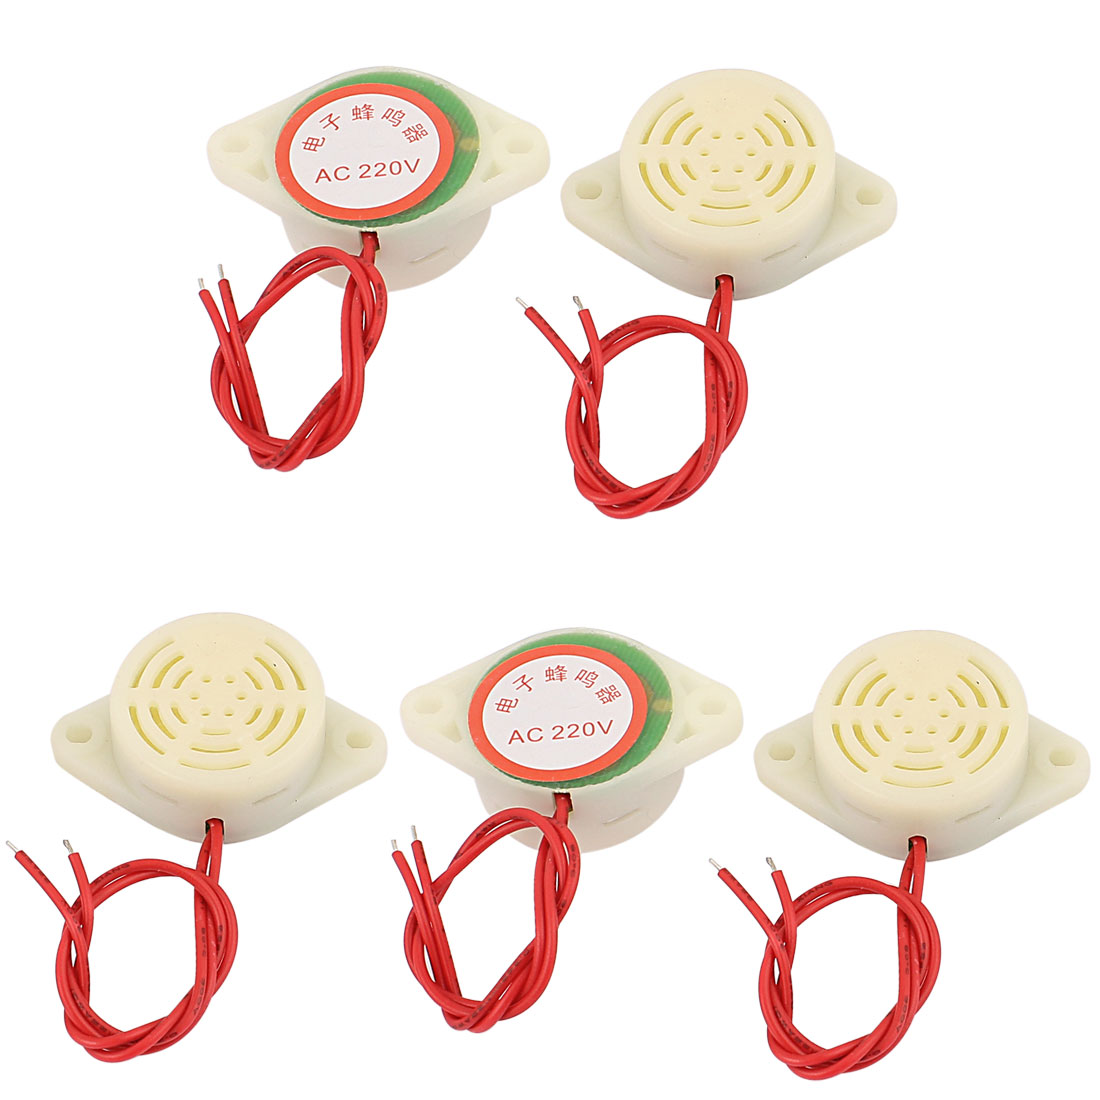 AC 220V Wired Industrial Shaking Sound Electronic Buzzer White 5Pcs